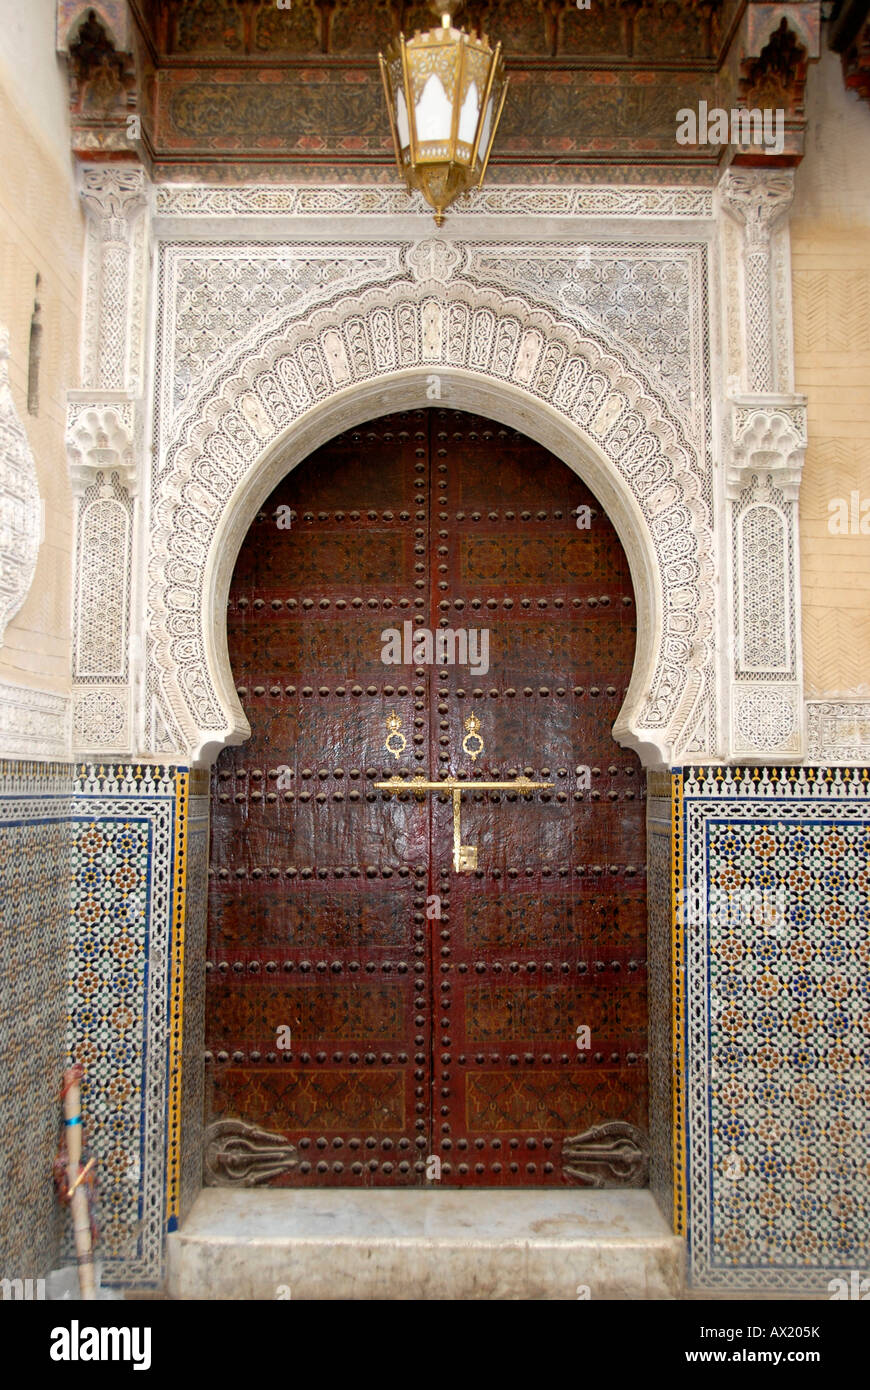 Richly decorated wooden entrance gate medina Fes El Bali Morocco - Stock Image